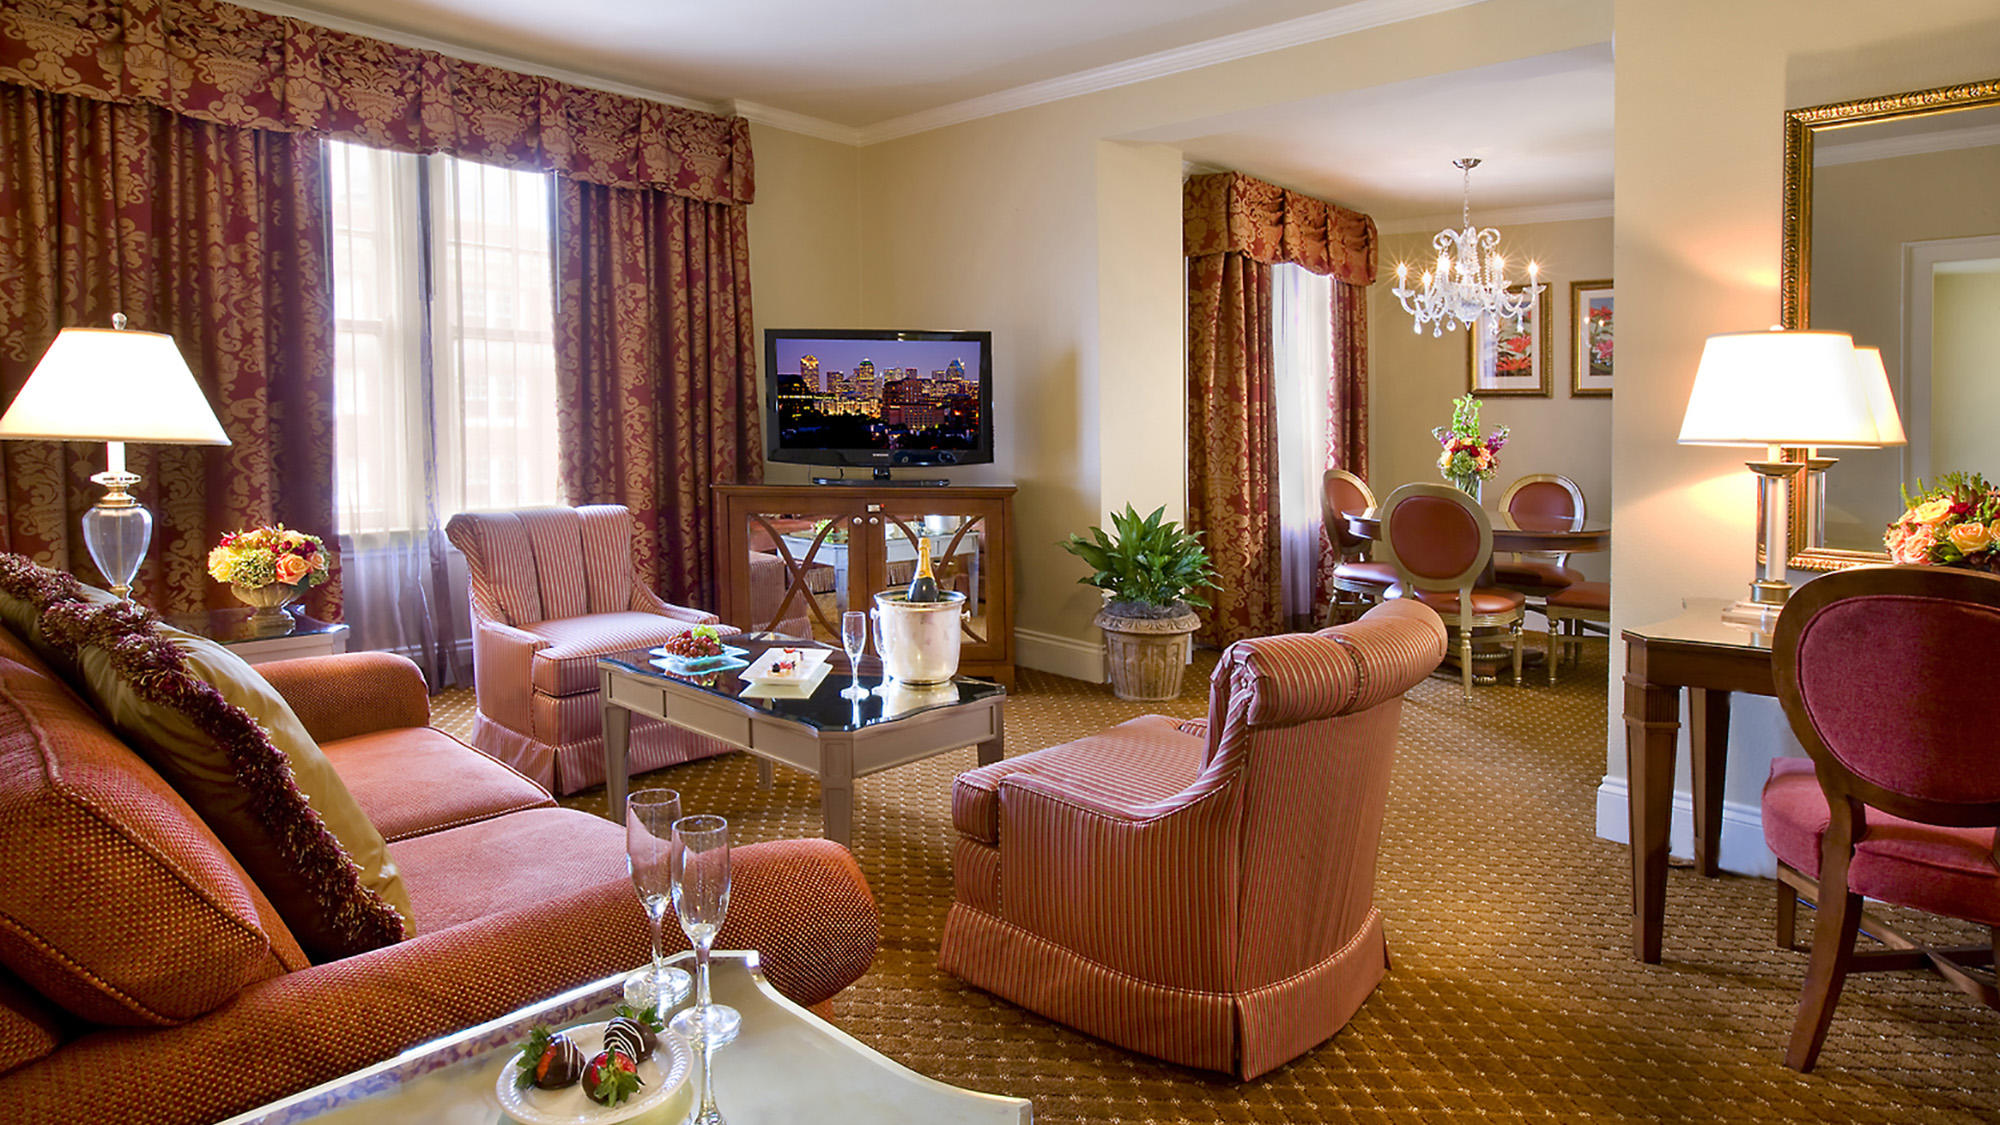 Deluxe Suite offer details